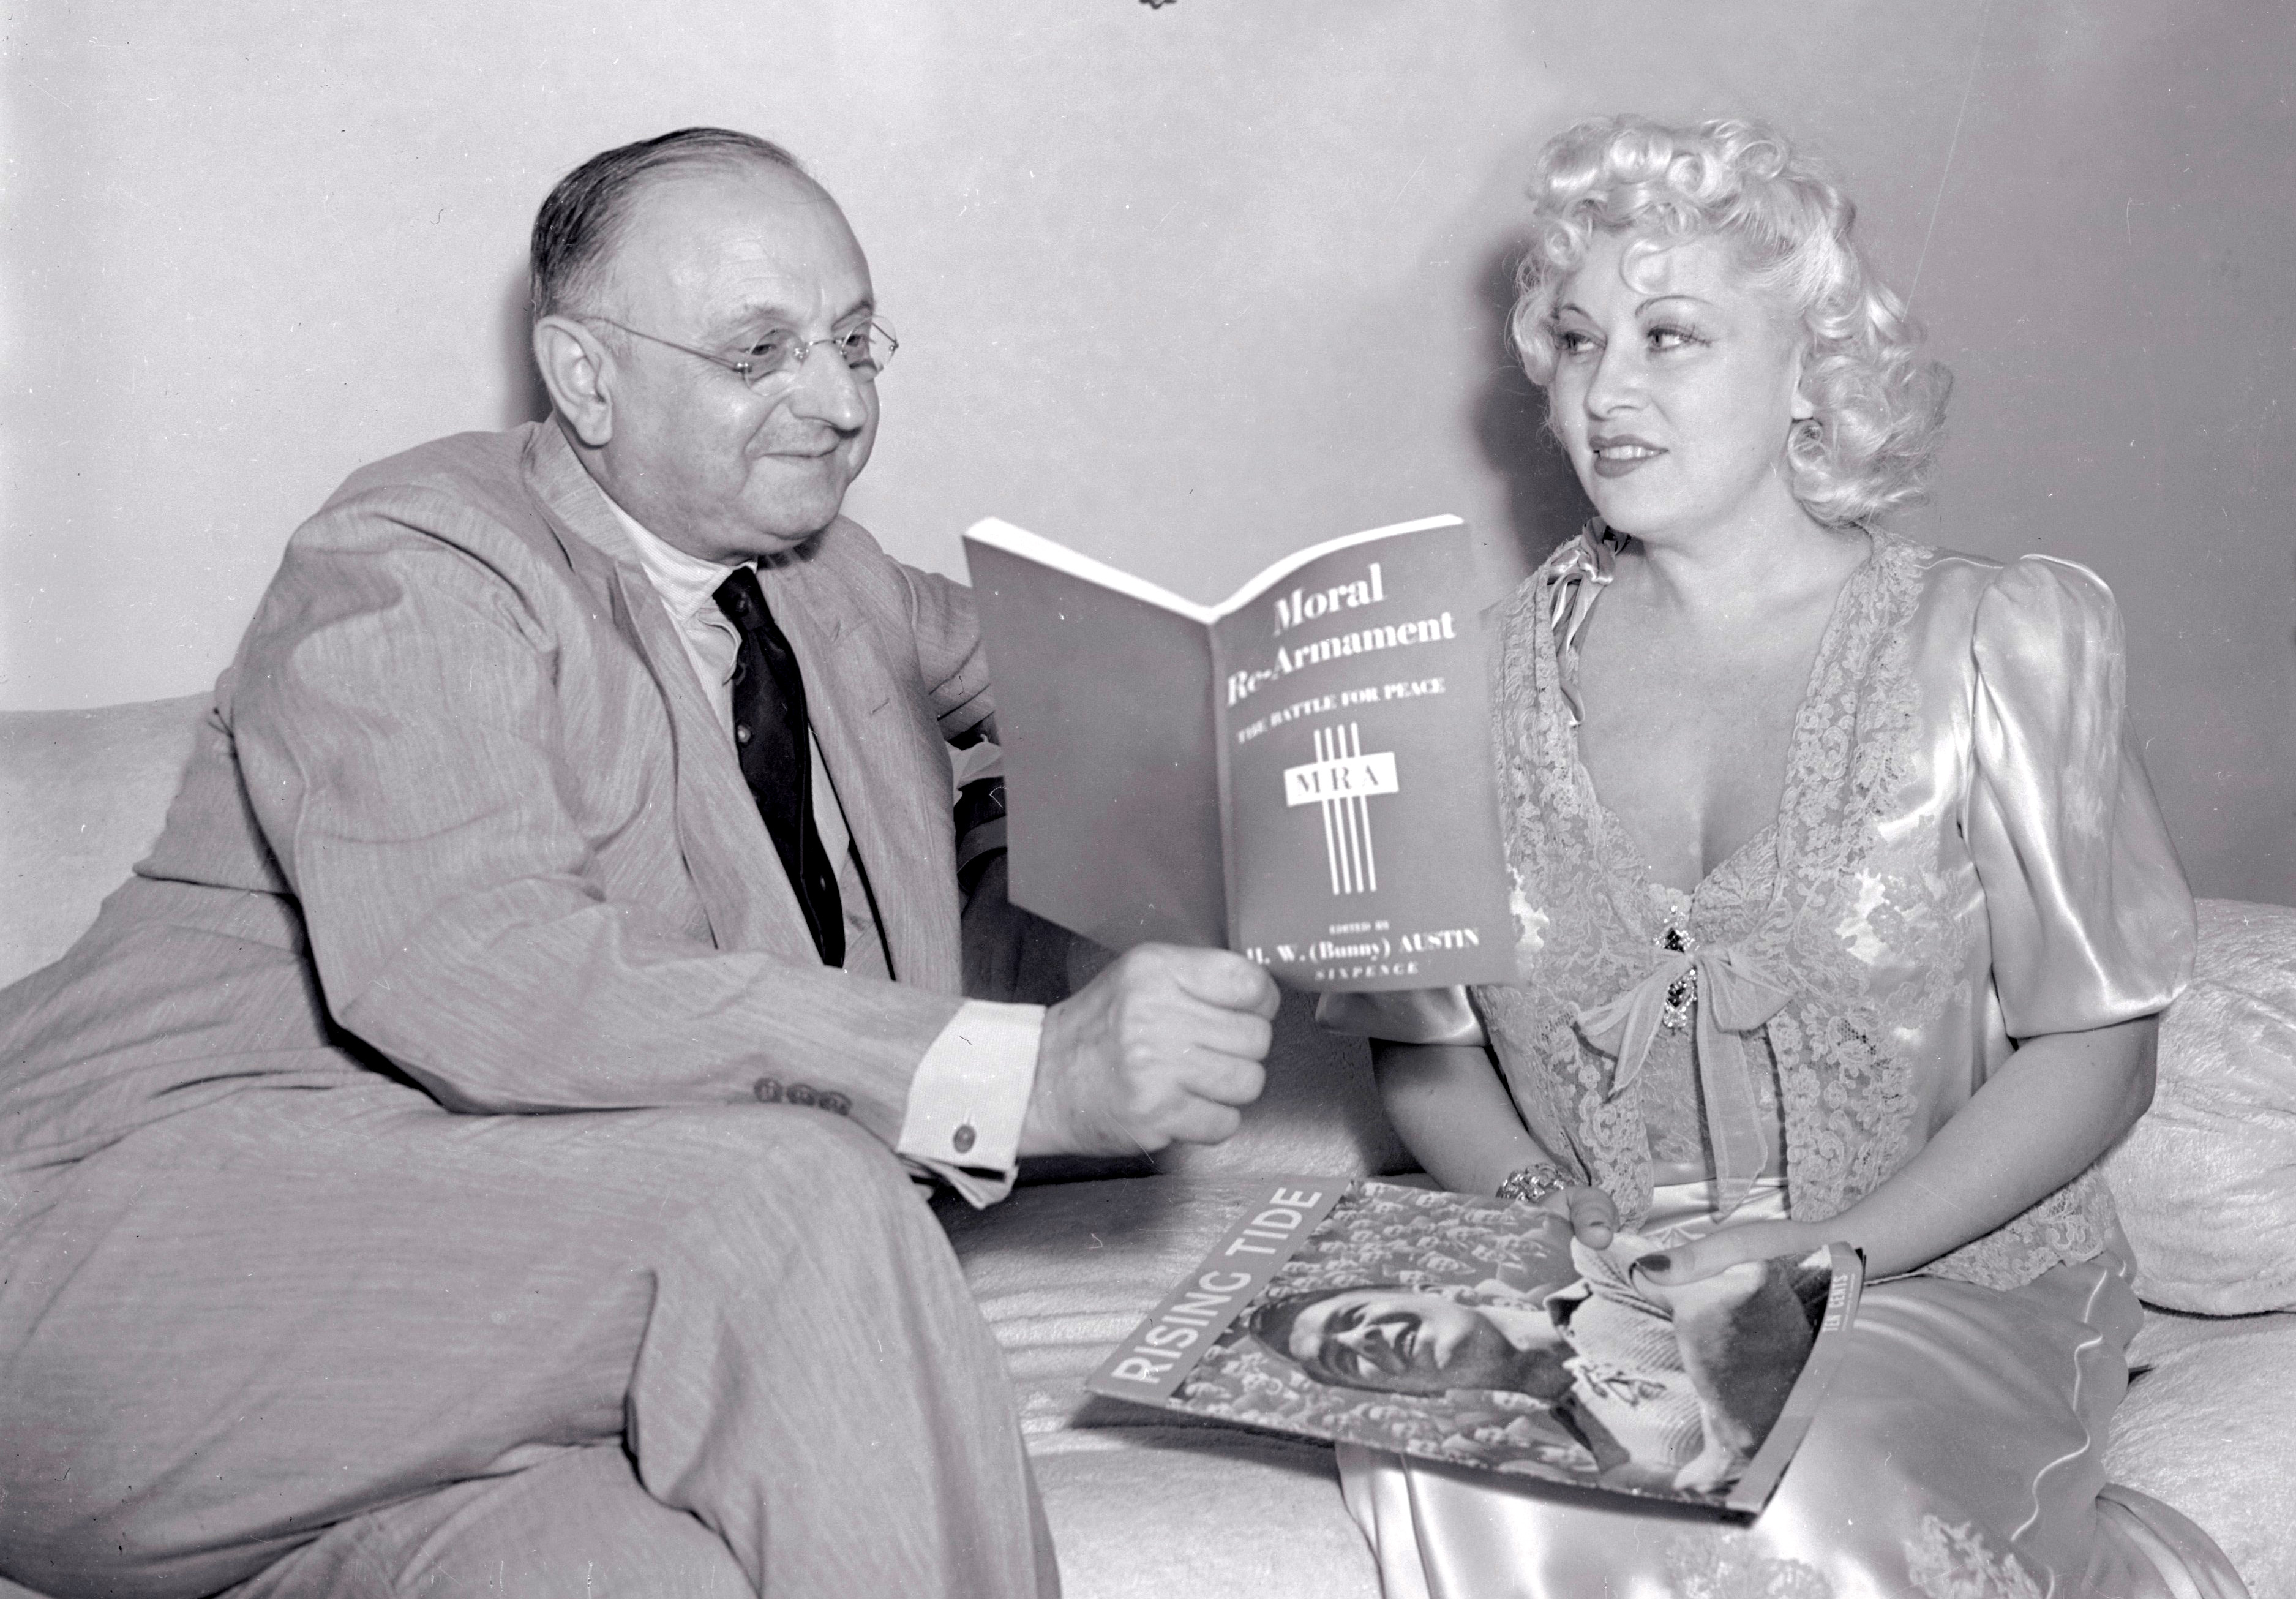 Mae West Is Shown In Her Sumptuous Hollywood Apartment As She Recently Discussed M Rearmament